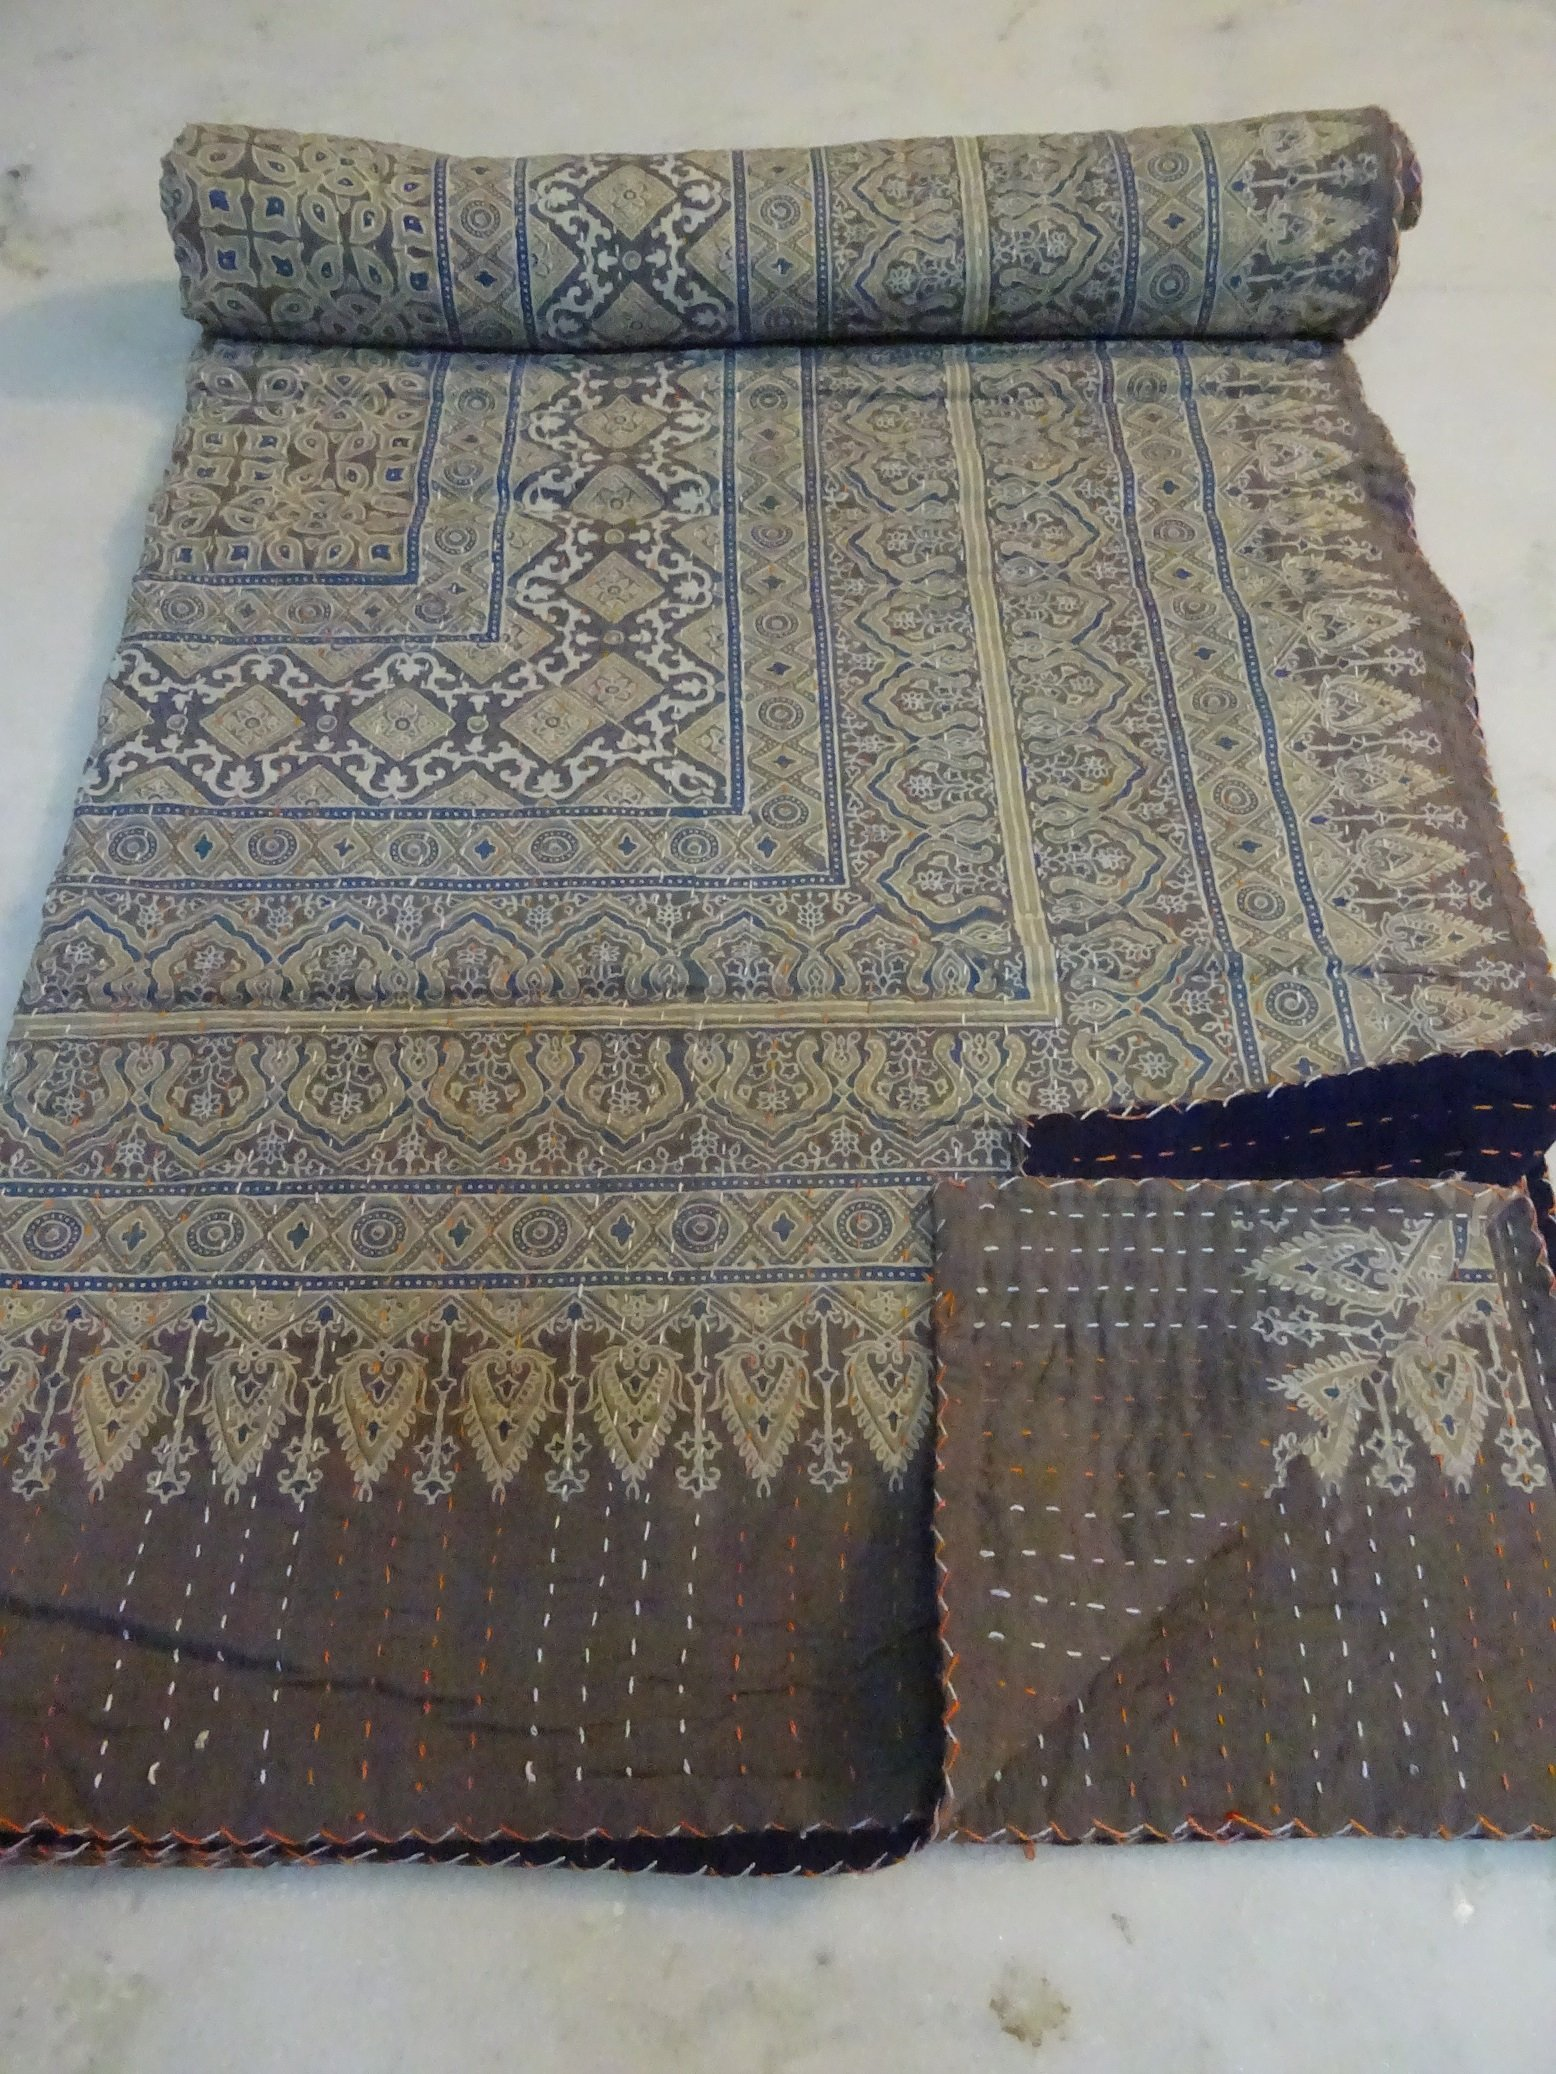 Tribal Asian Textiles Cotton Kantha Quilt Hand Block Print Bed Cover Throw Indian Blanket